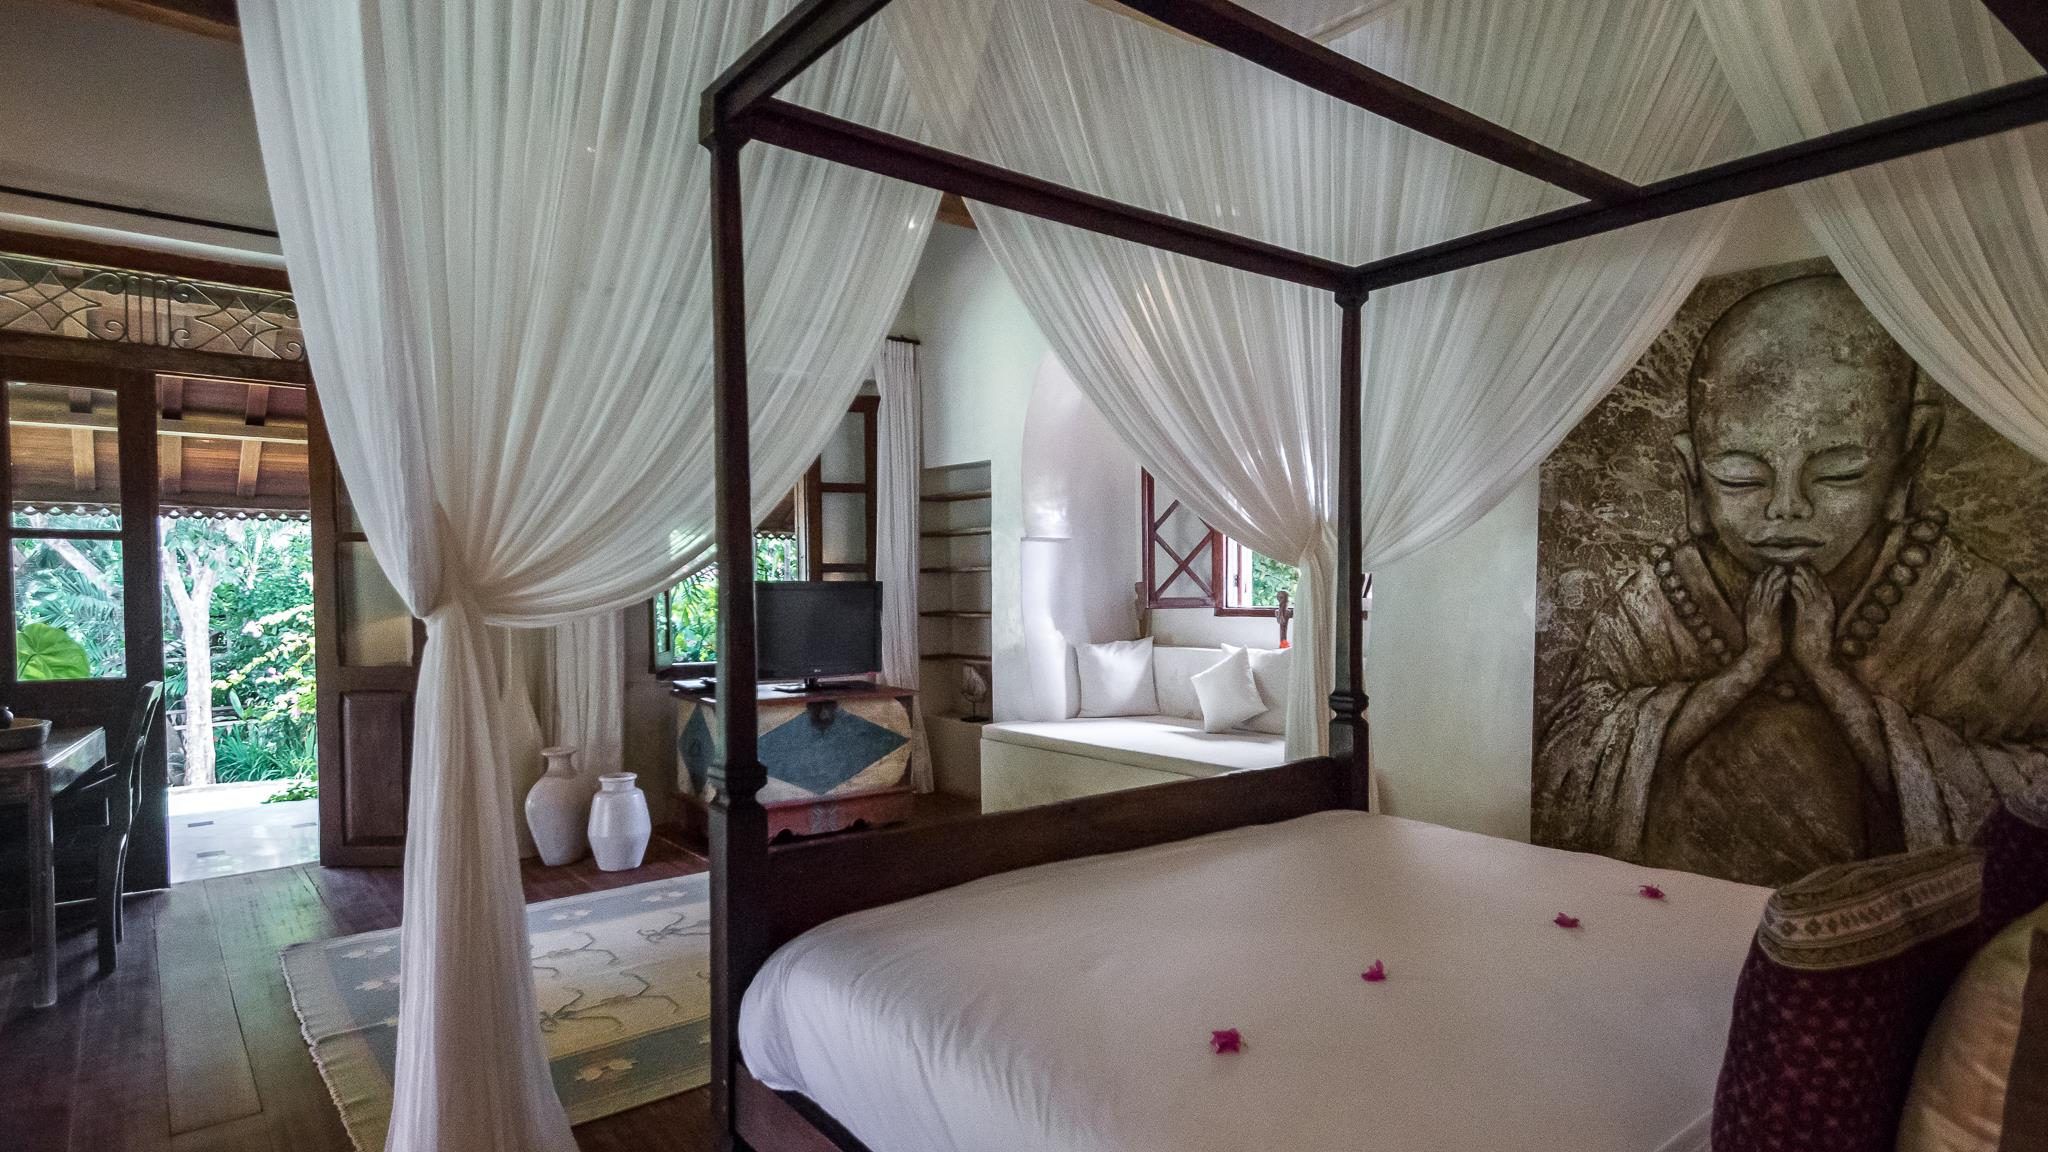 Four Poster Bed with View - Villa Galante - Umalas, Bali